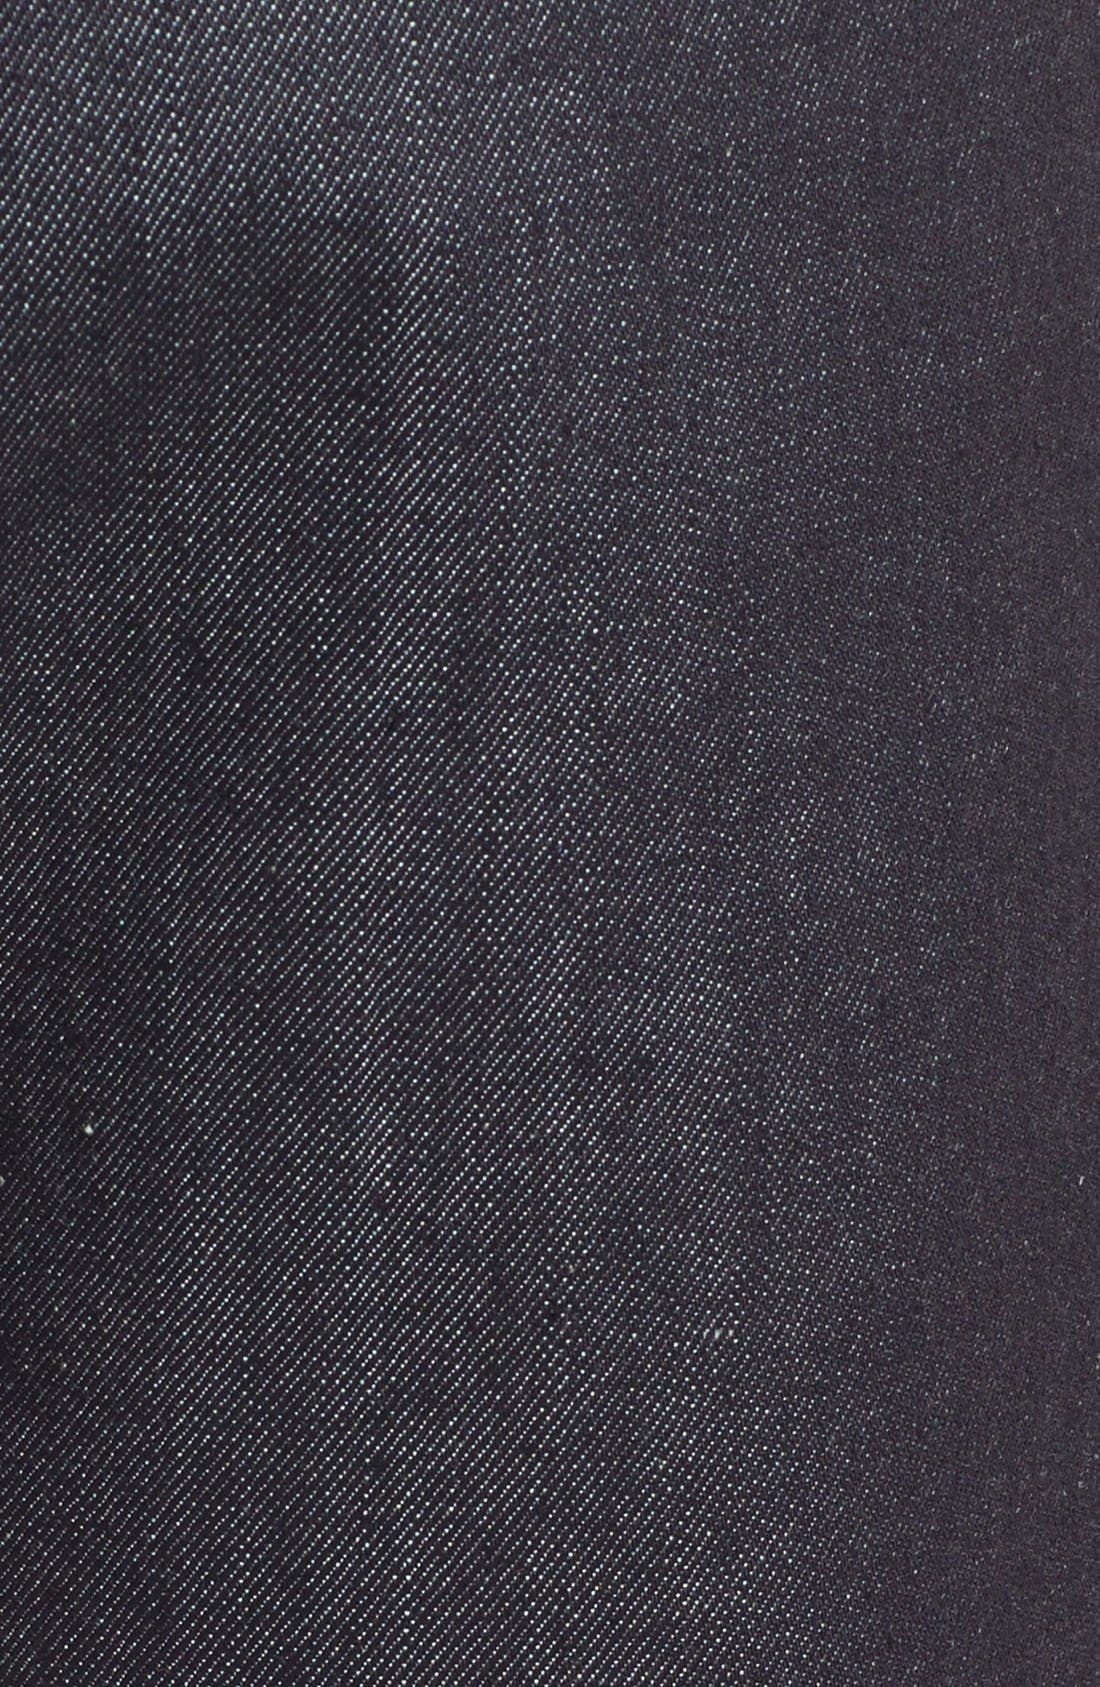 'Brute Knut' Slouchy Slim Fit Selvedge Jeans,                             Alternate thumbnail 5, color,                             411